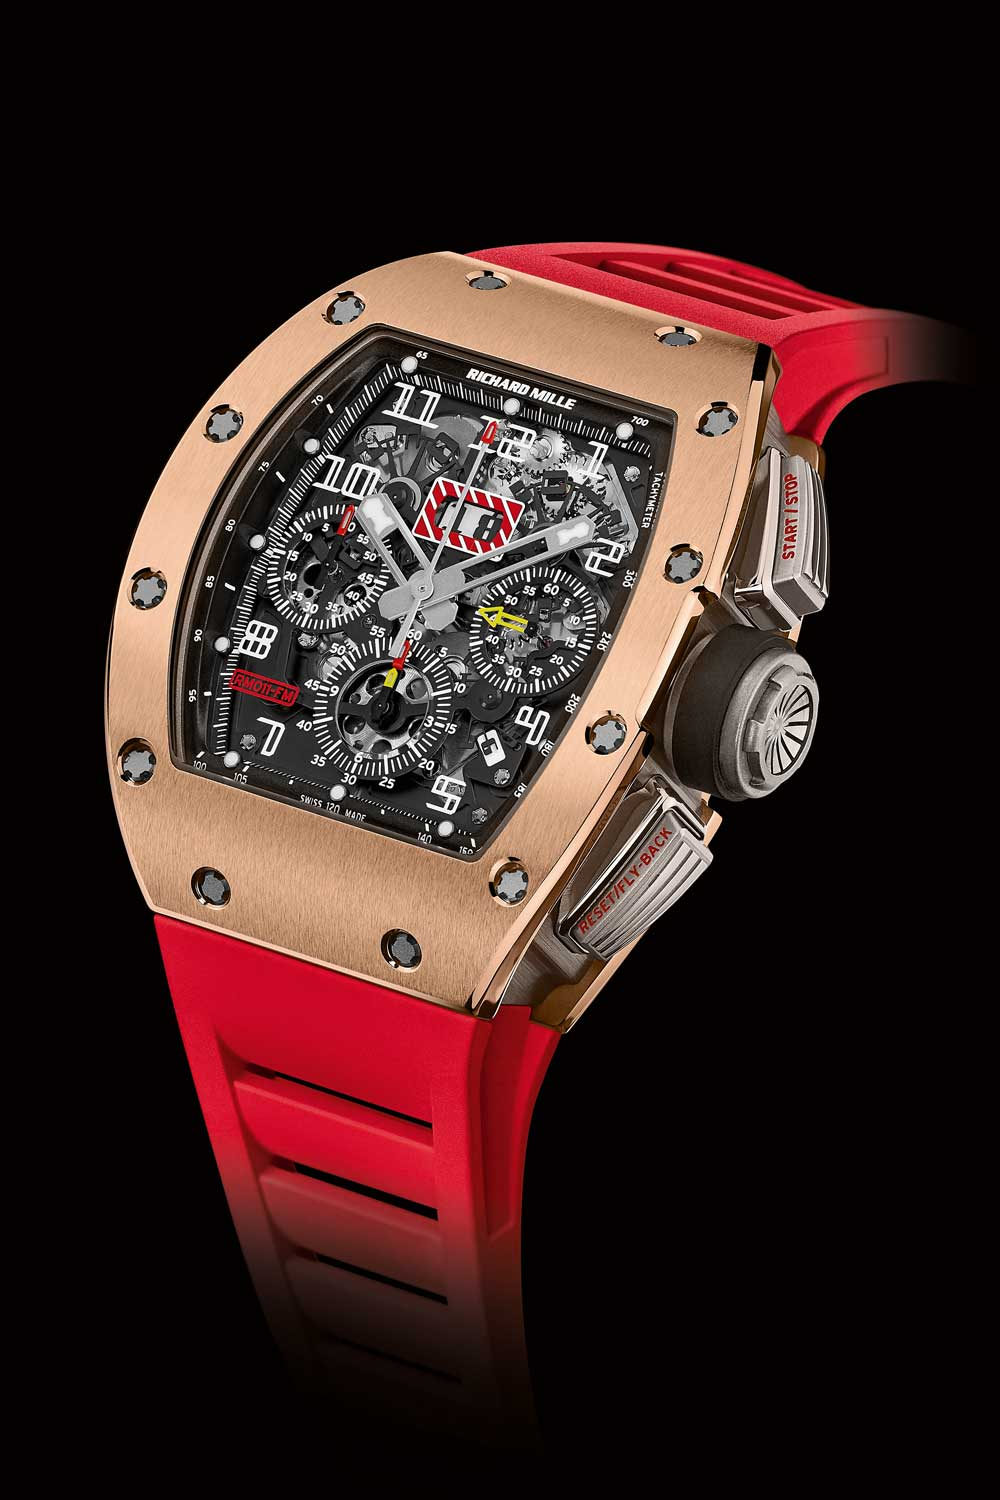 Richard Mille presented the RM 011 to Wei on his birthday in 2008